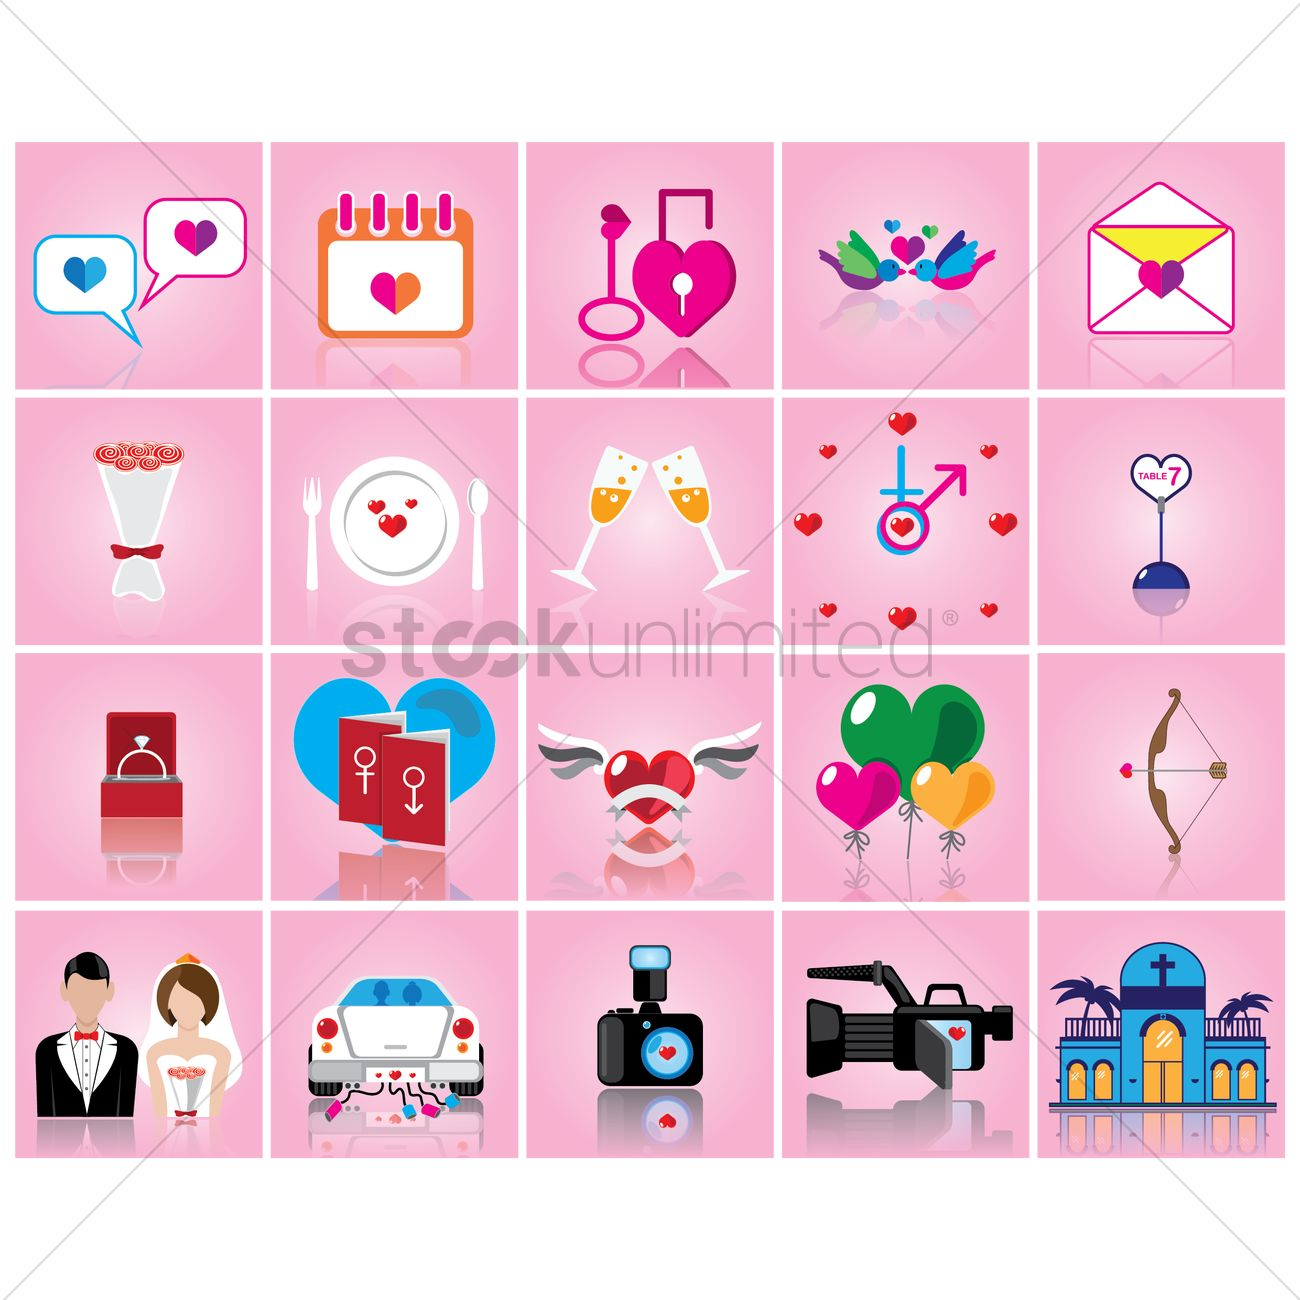 Set of wedding theme icons vector image 1456867 stockunlimited set of wedding theme icons vector graphic junglespirit Gallery